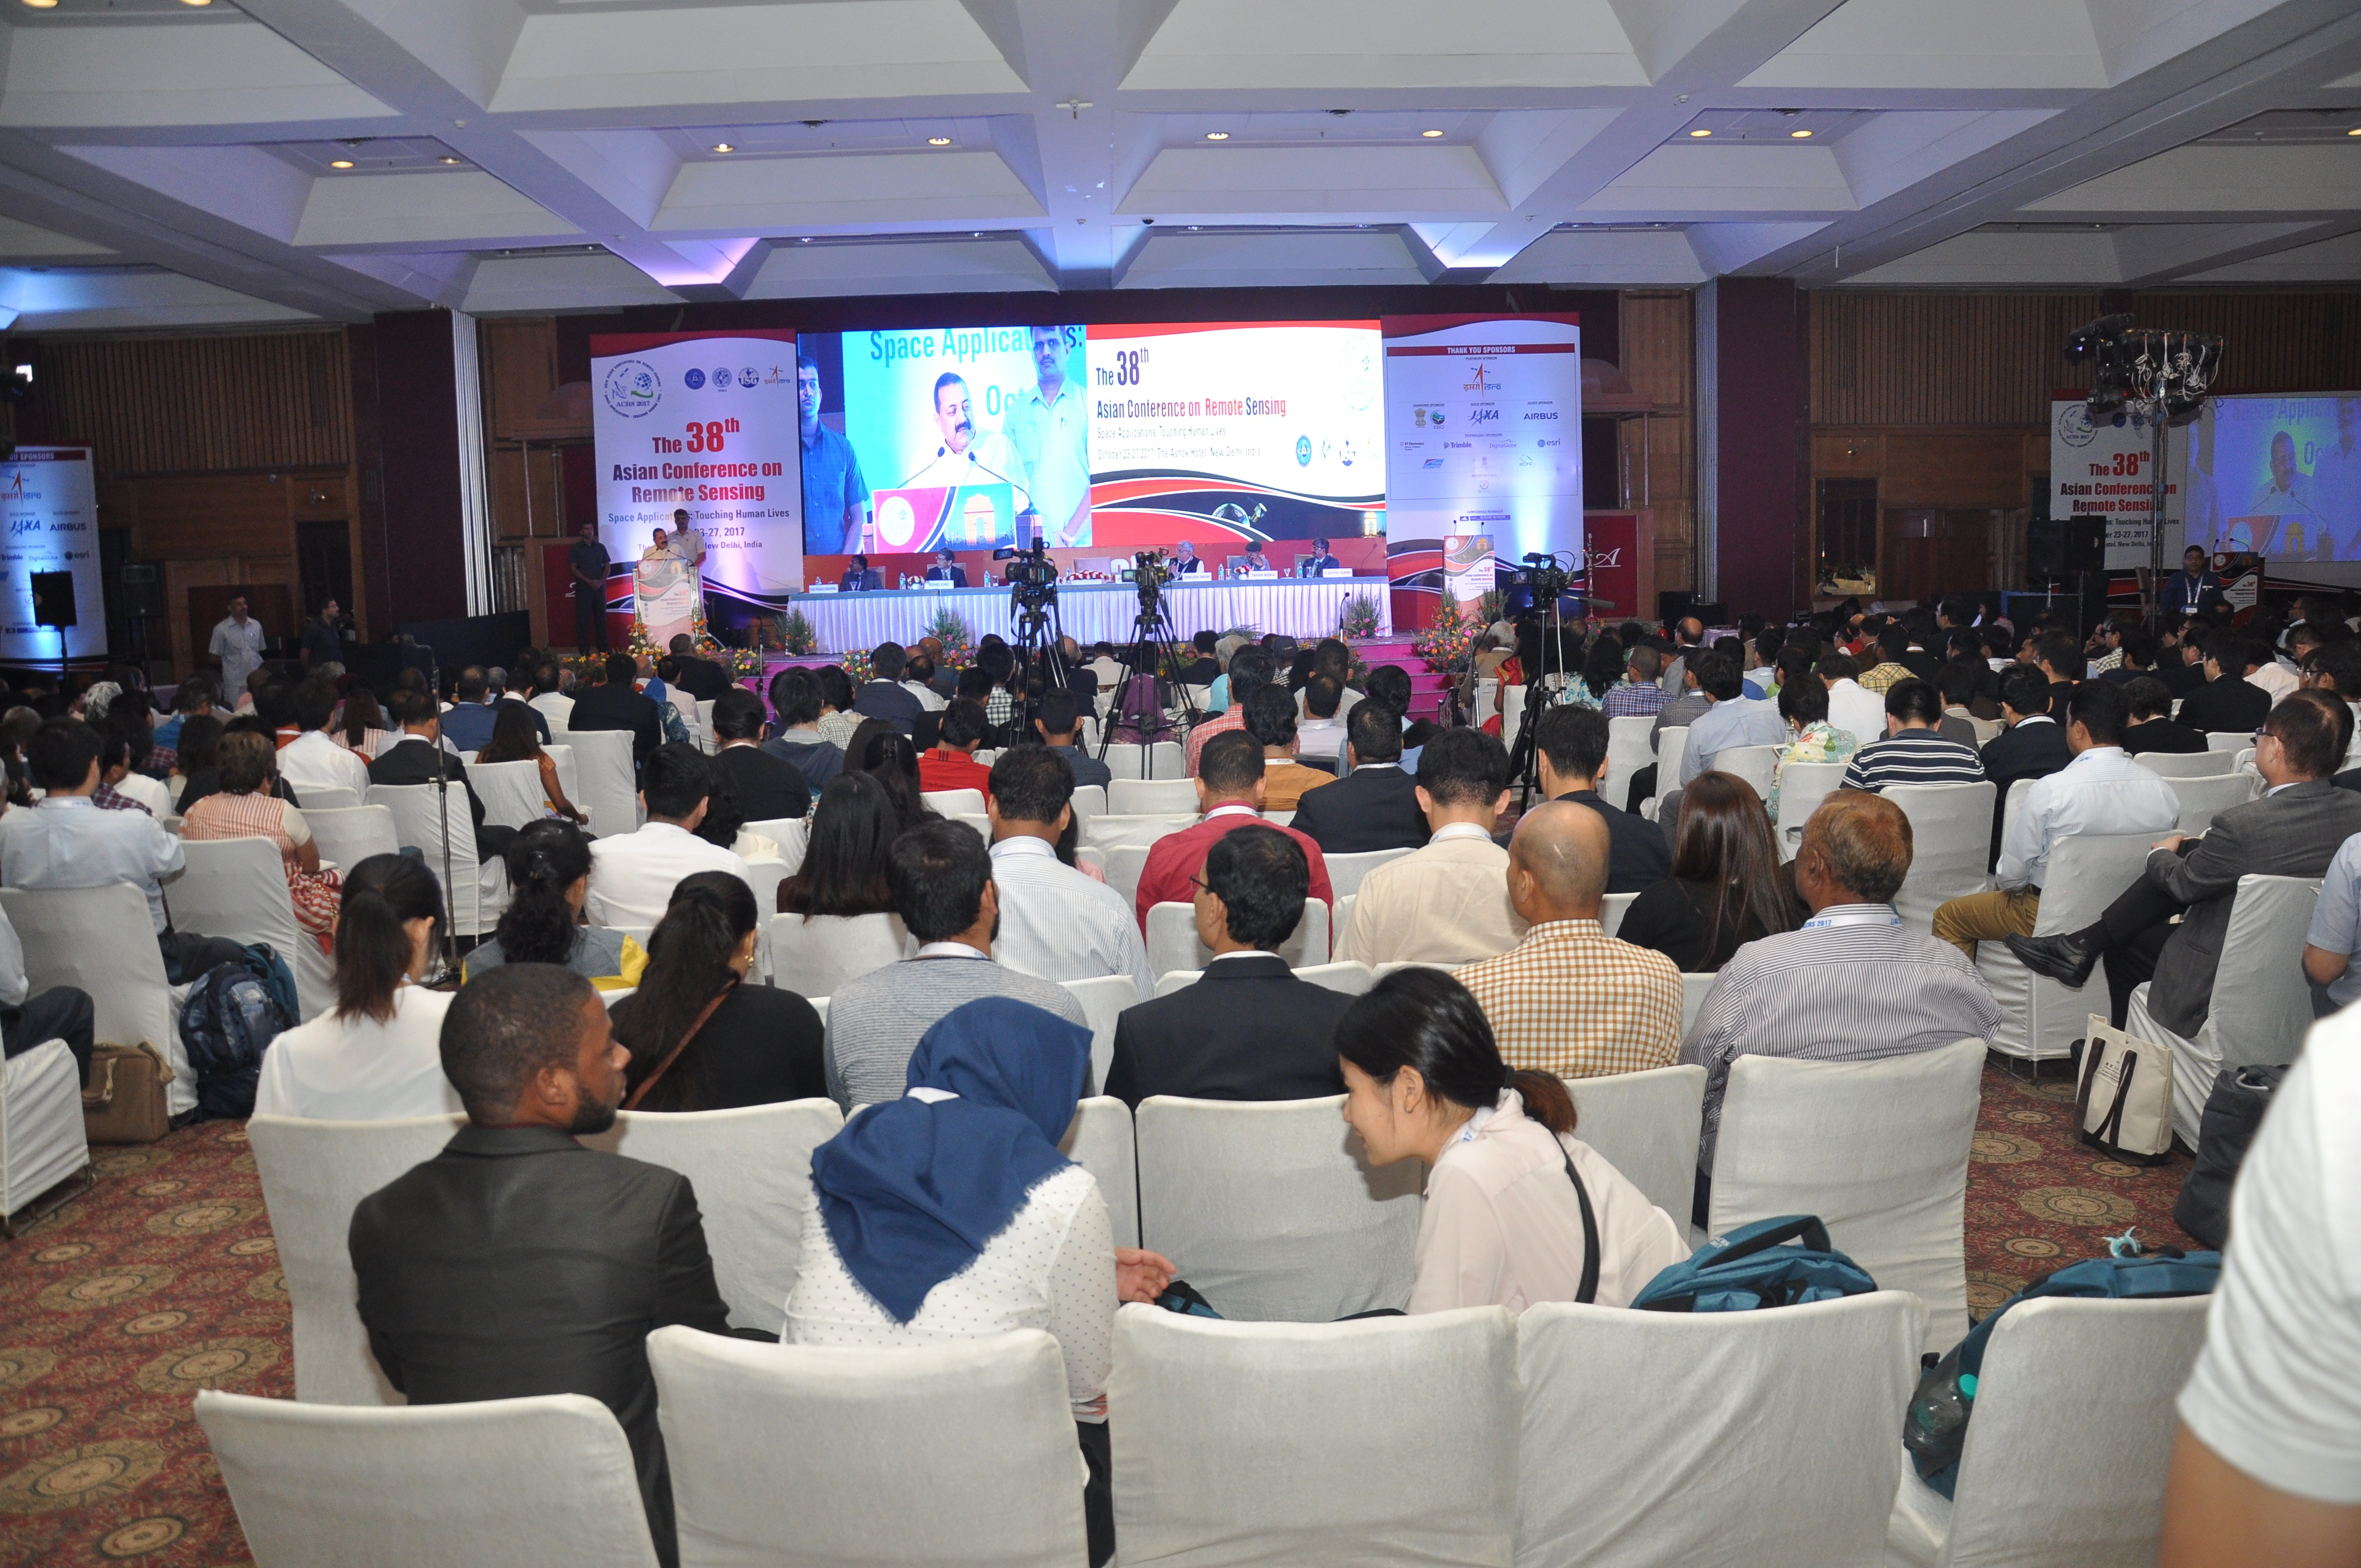 Dr. Jitendra Singh, the Hon'ble Minister of State PMO, addressing the gathering during the inaugural session